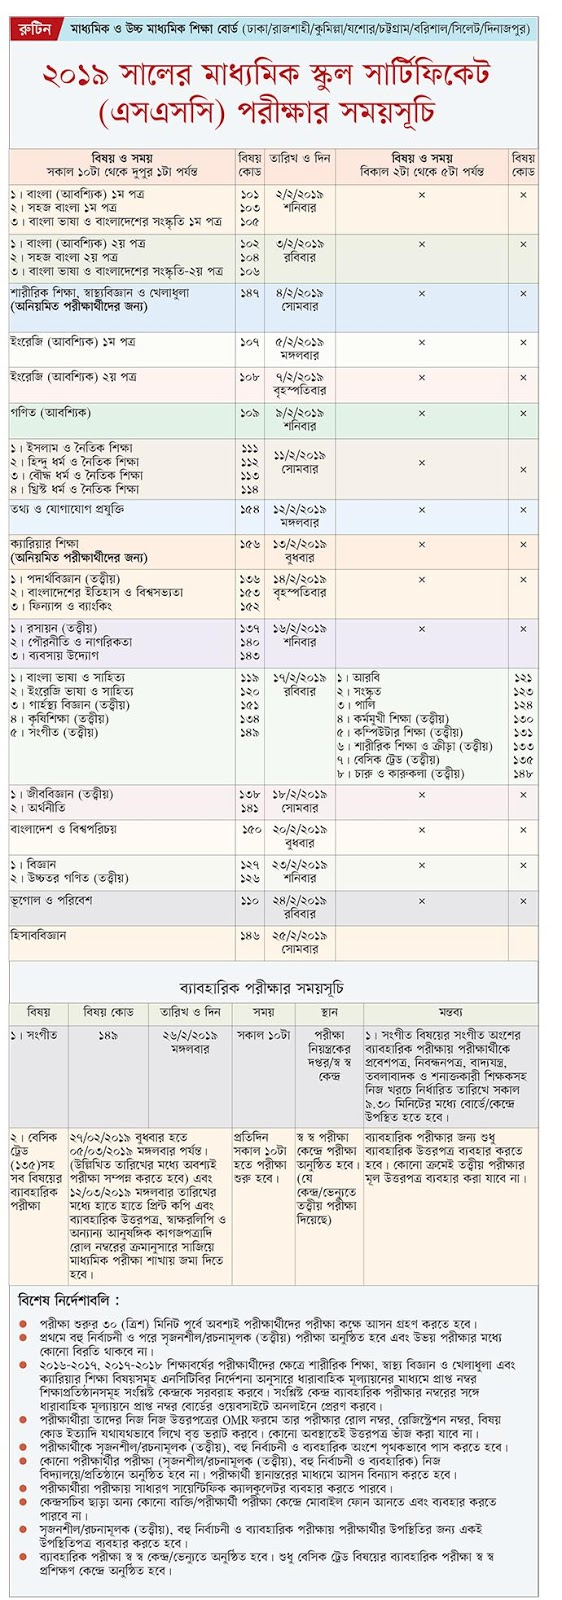 SSC Examination Routine 2019